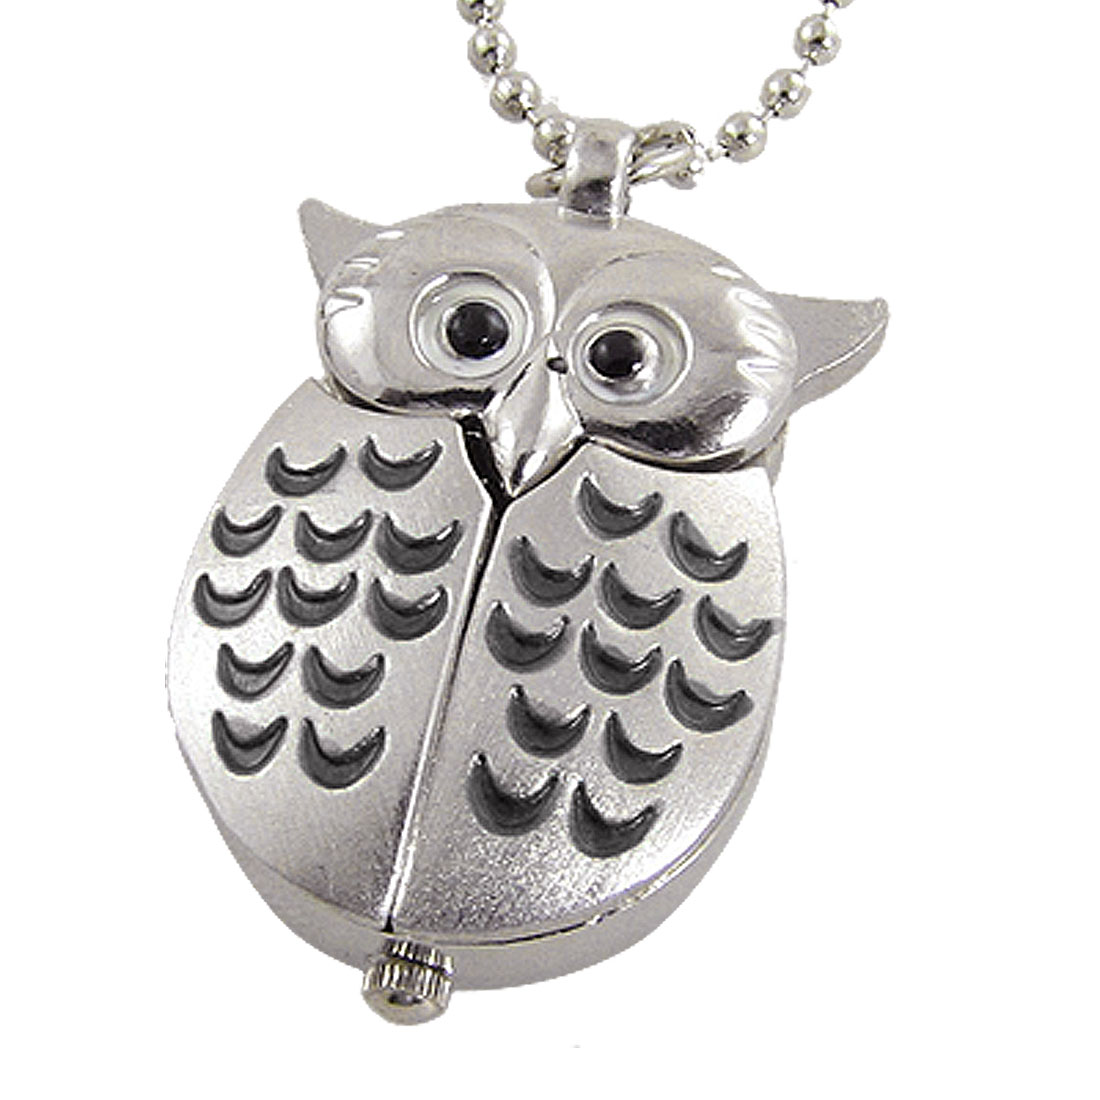 Lady Black Half Moon Pattern Night Owl Shape Pendant Necklace Watch